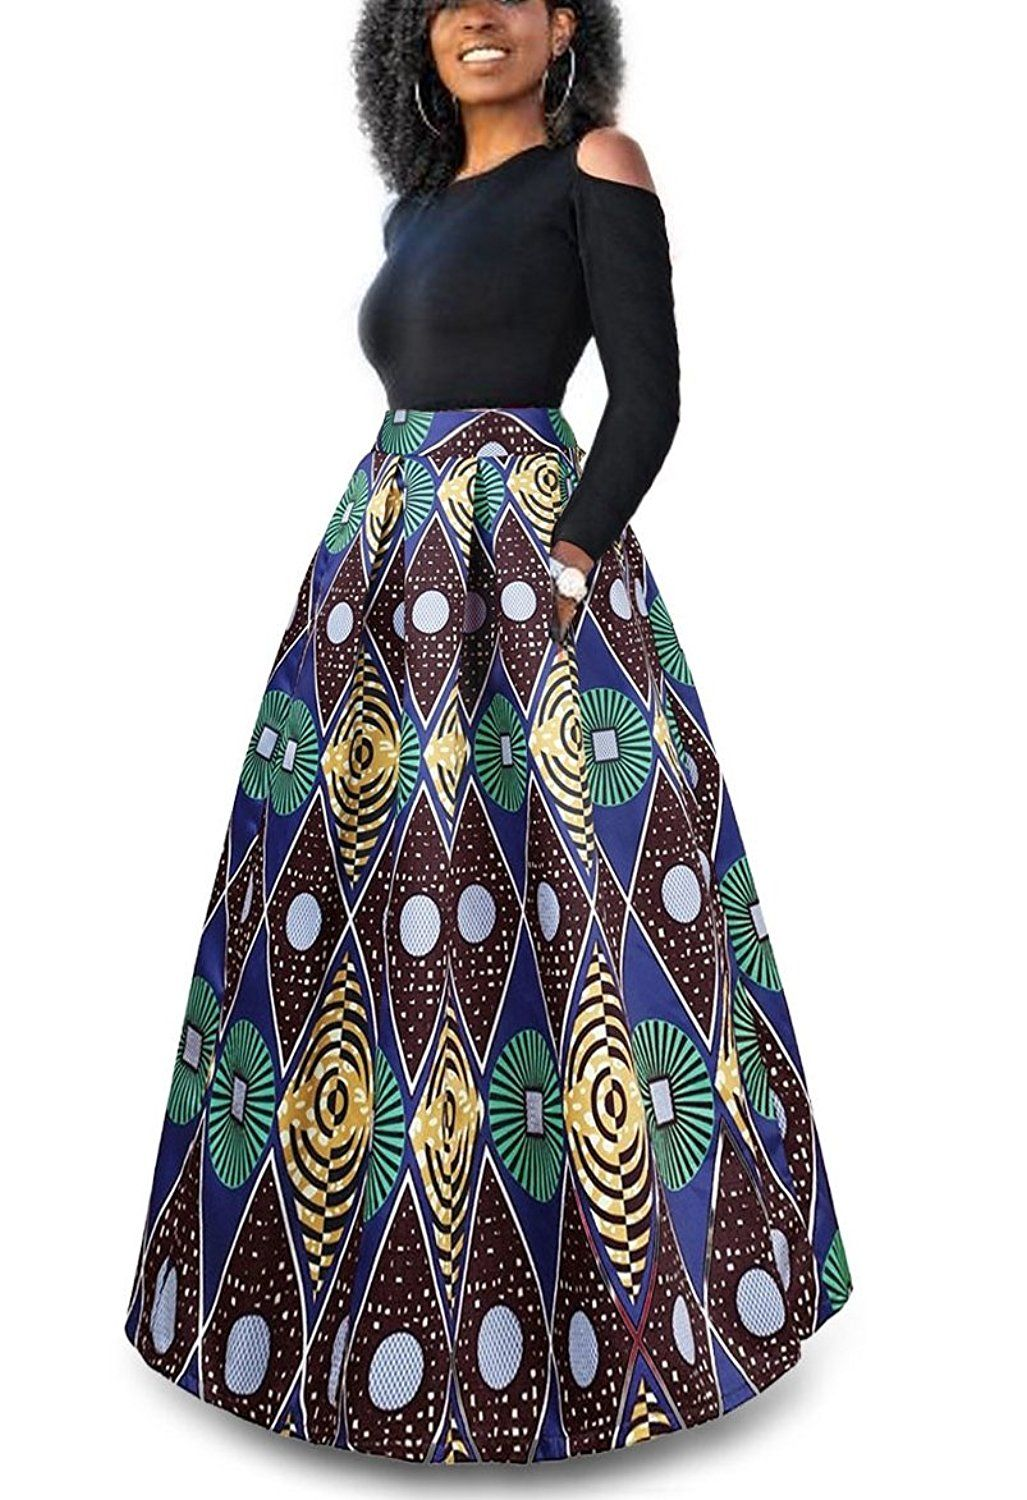 92d3ba6c89 Women's African Floral Print A Line Long Skirt Pockets Two Pieces Maxi  Dress #ad #africanfashion #africanprinted